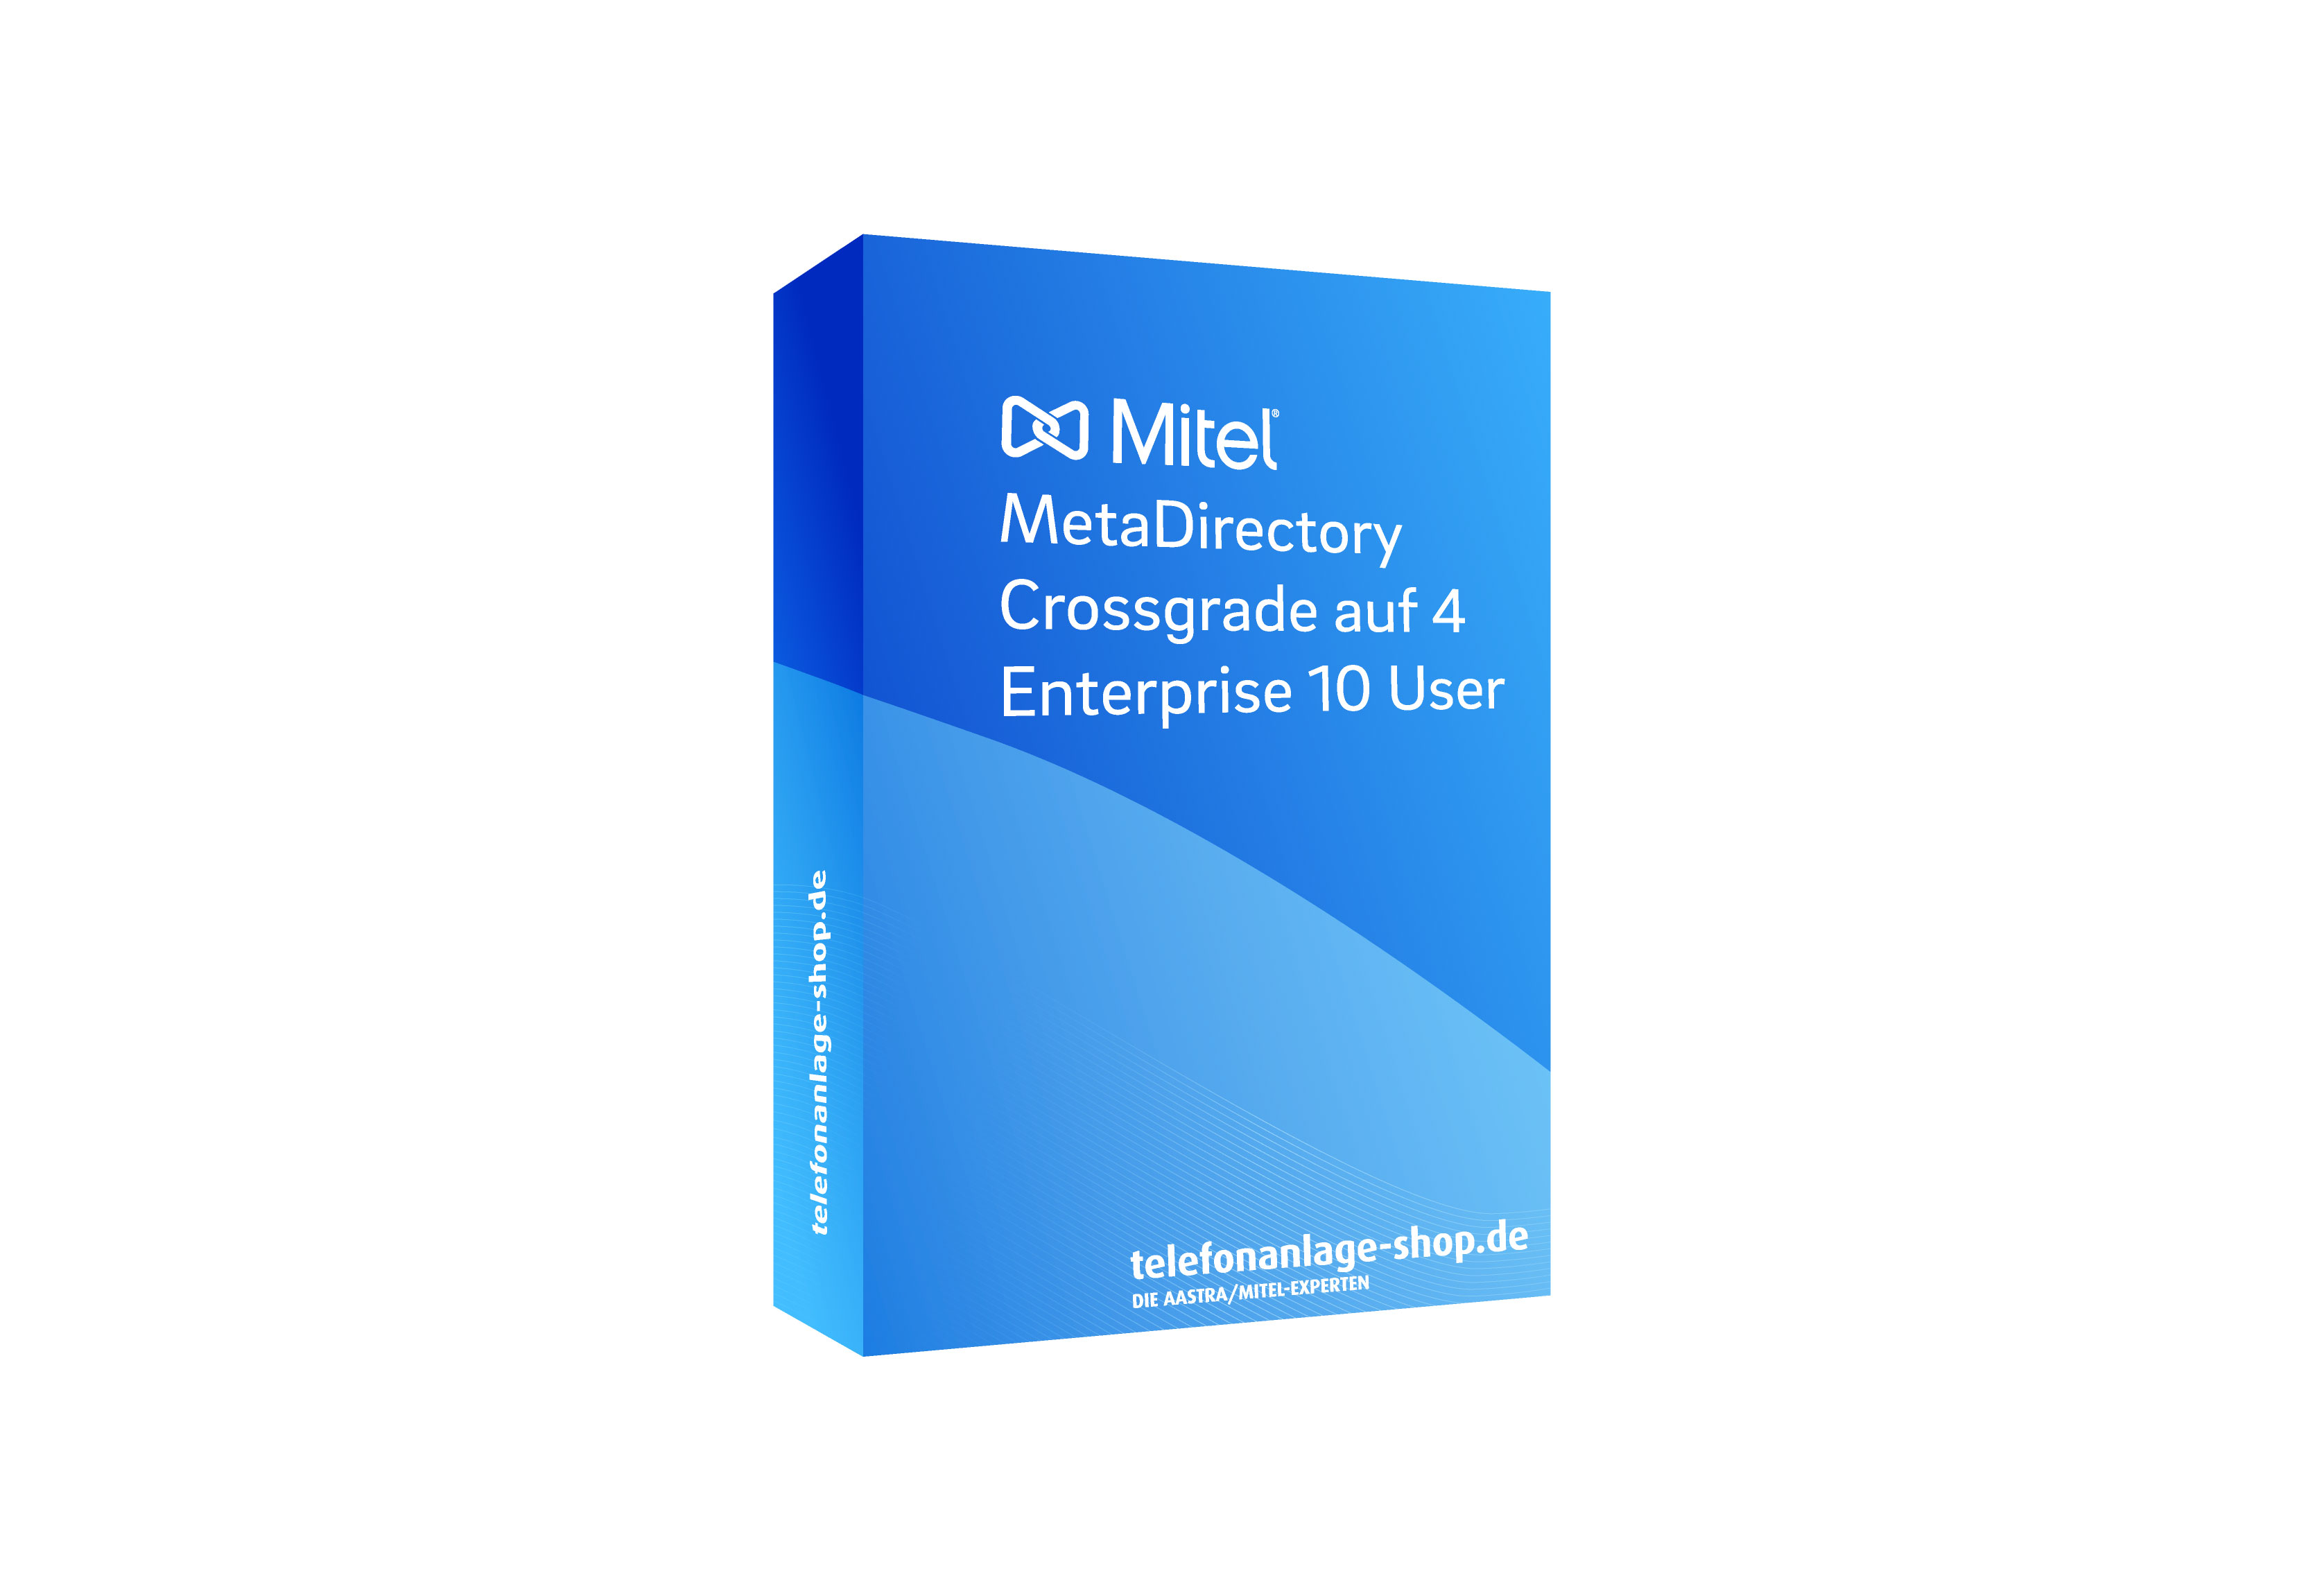 Produktbild - Mitel MetaDirectory Crossgrade auf 4 Enterprise 10 User